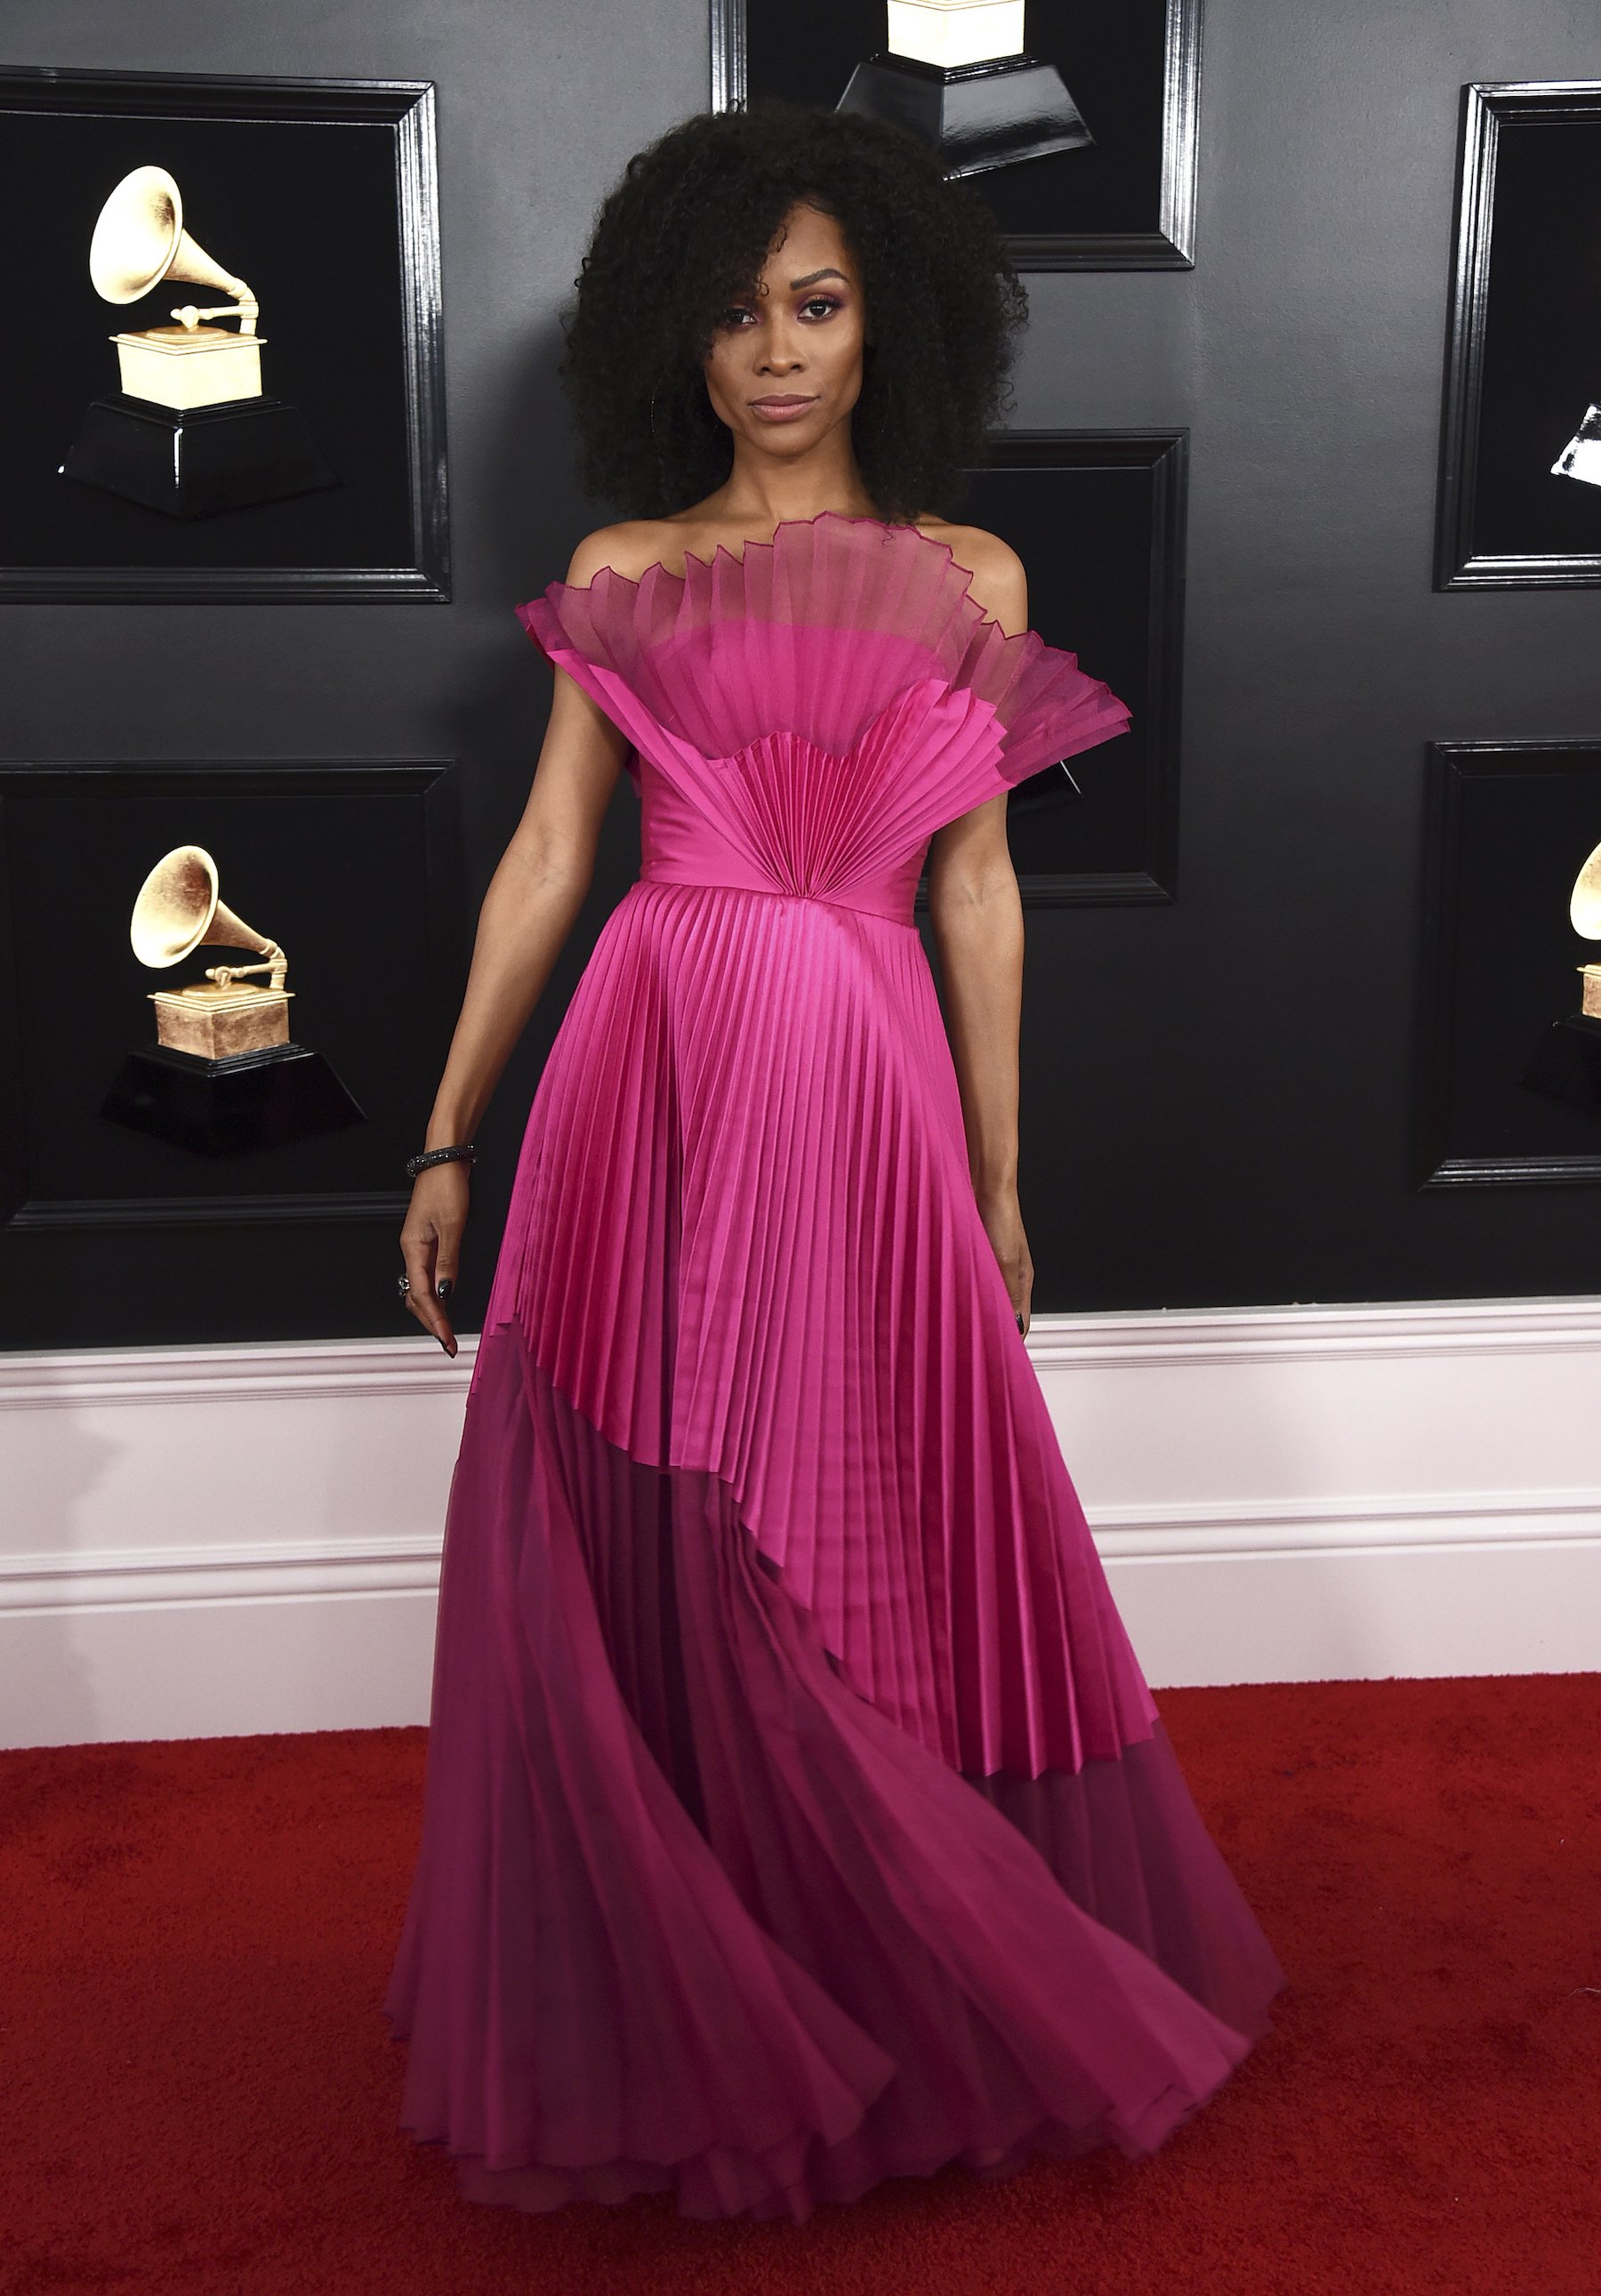 grammys red carpet fashion 2019 photos  6abc